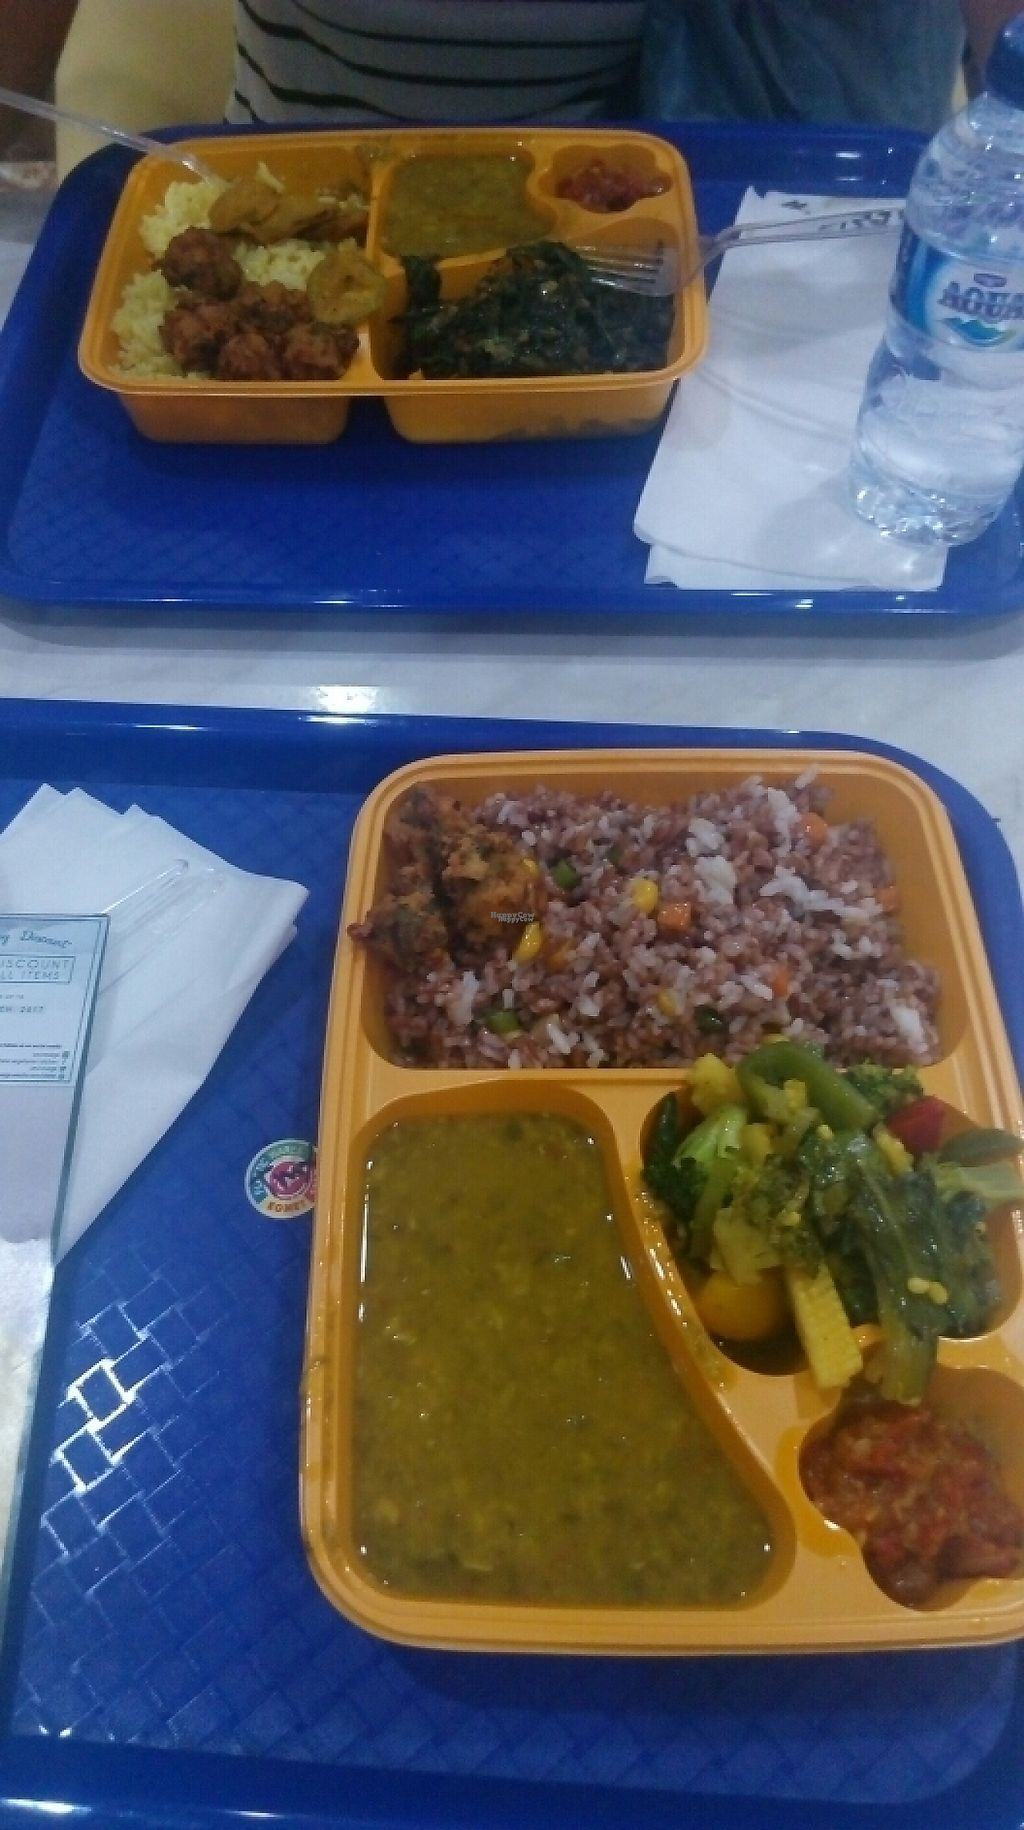 """Photo of Vesne Vegetarian Kitchen  by <a href=""""/members/profile/Sillywesimon"""">Sillywesimon</a> <br/>tasty but in plastic <br/> March 29, 2017  - <a href='/contact/abuse/image/83967/242271'>Report</a>"""